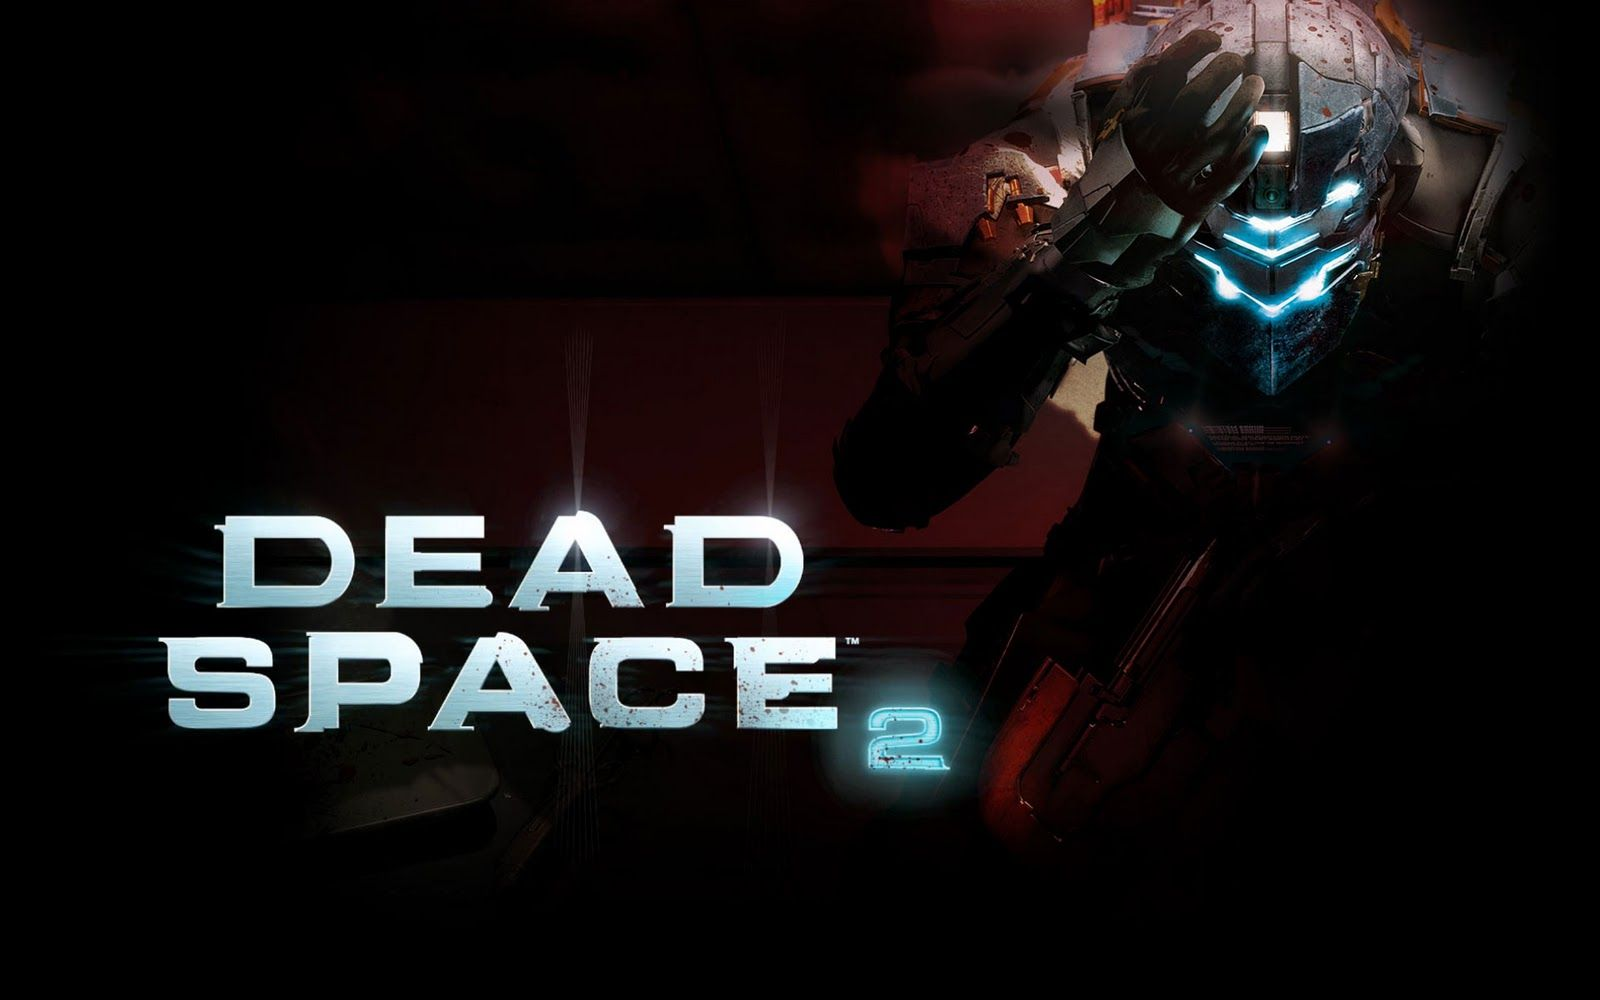 Best Dead Space 2 Wallpaper HD Wallpaper | Games Wallpapers